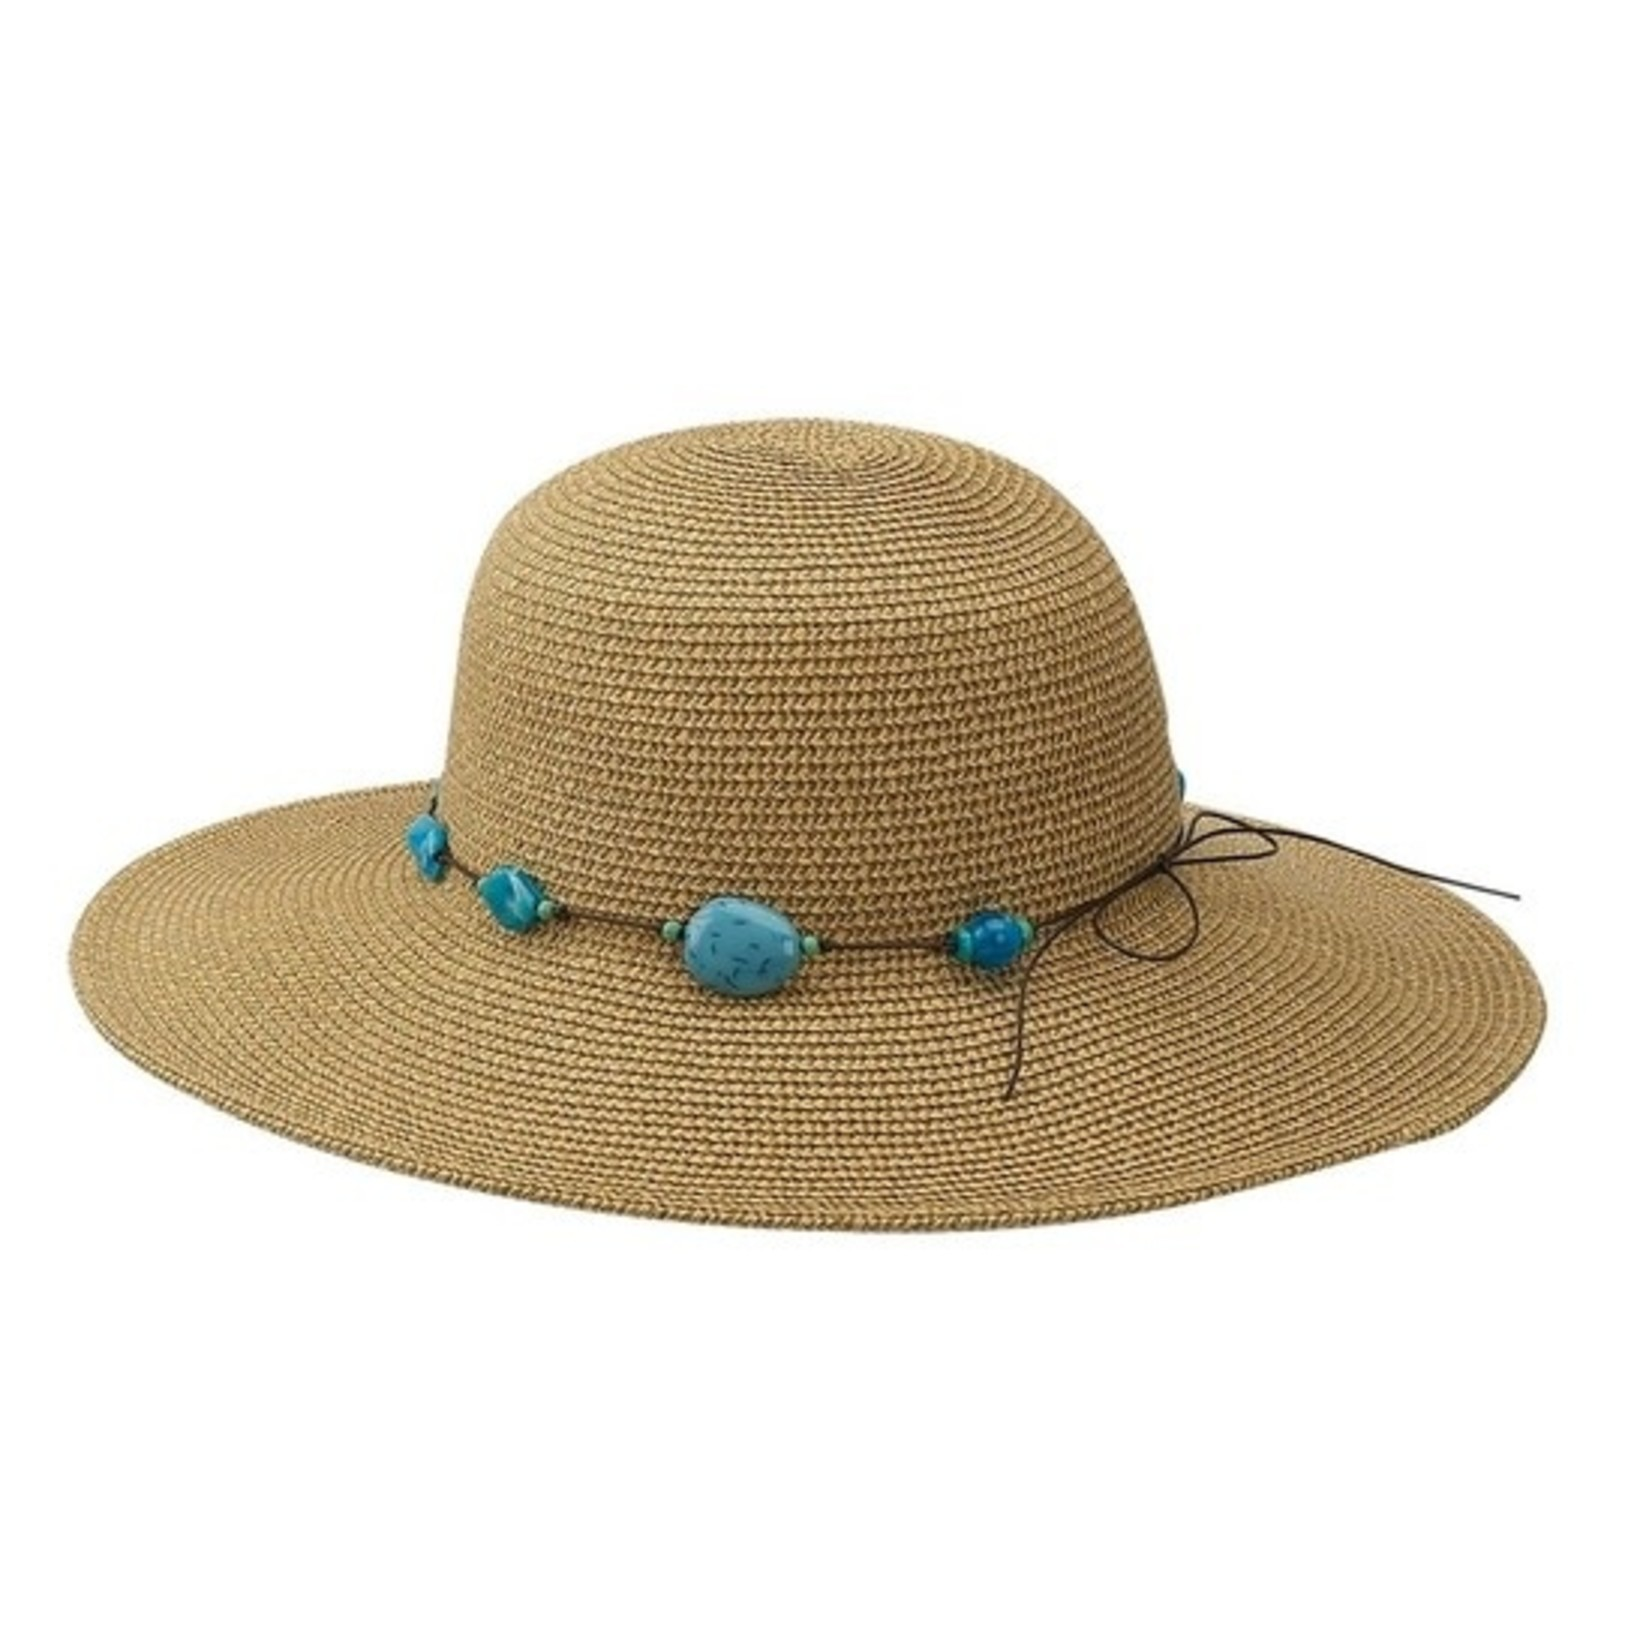 Stone Band Wide Brim Hat in Natural